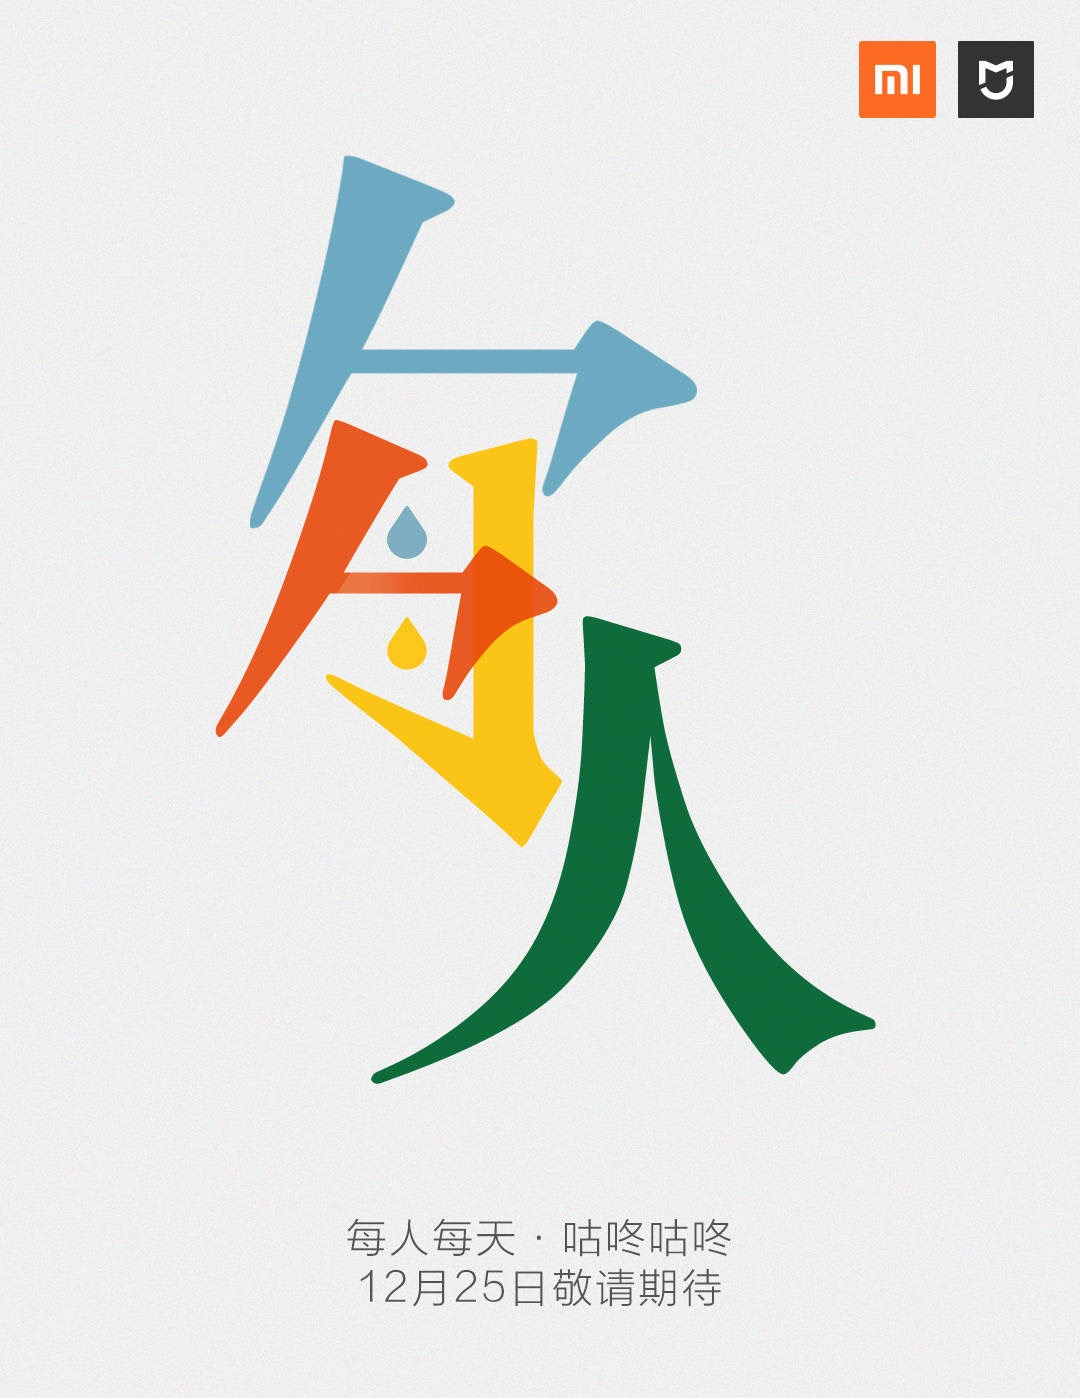 Xiaomi will present a new product for the home this December 25. Xiaomi Addicted News